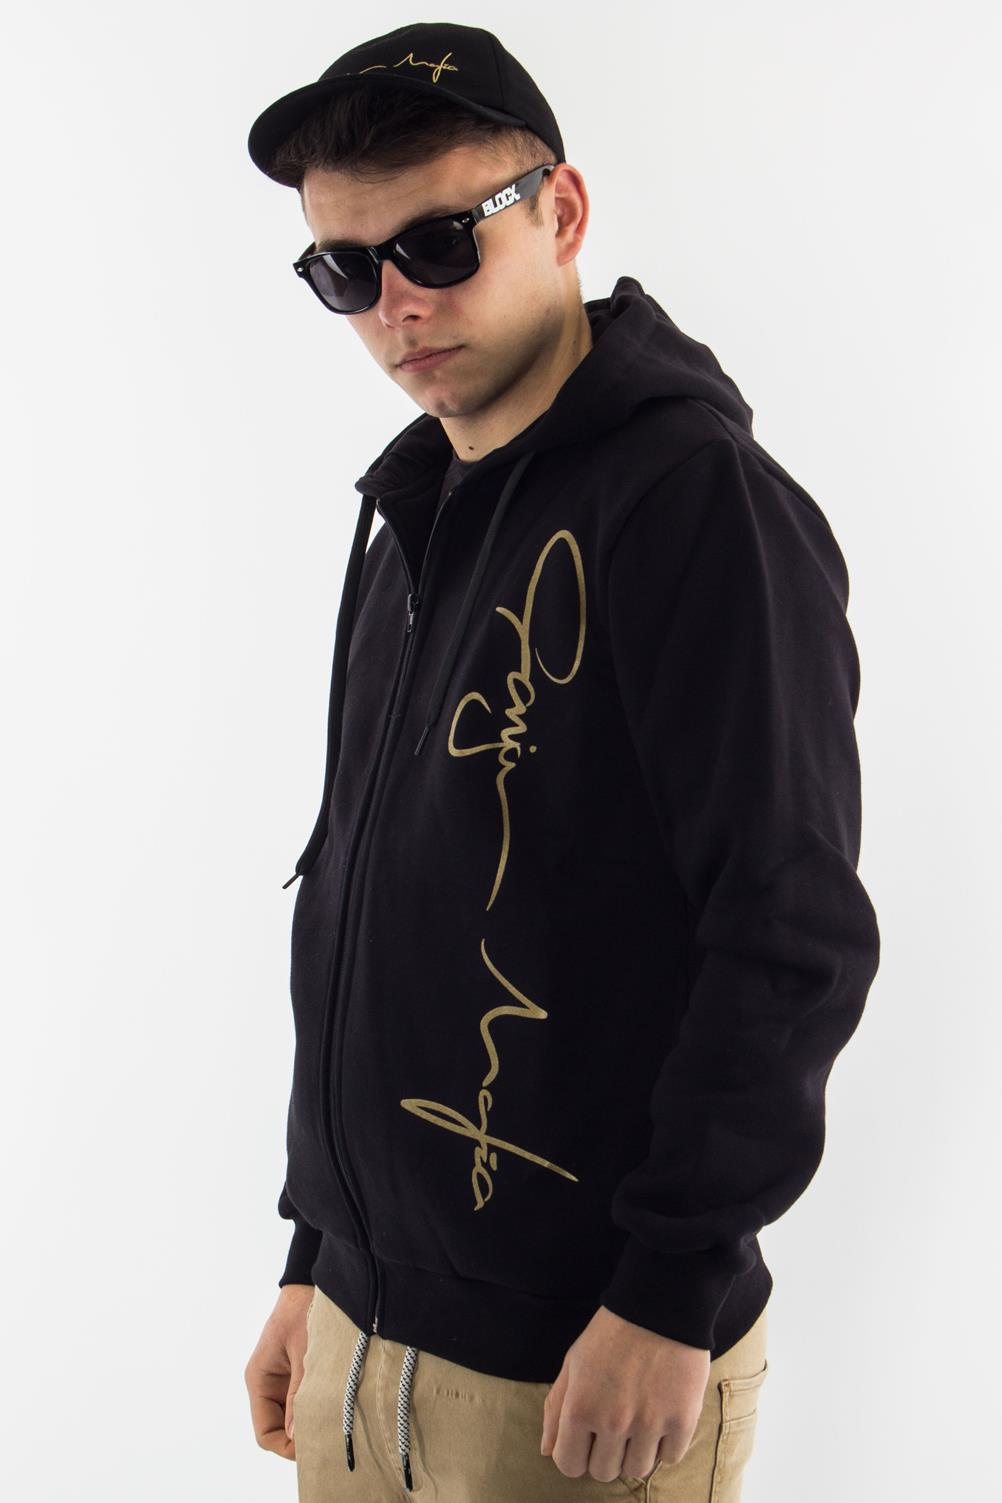 GANJA MAFIA BLUZA KAPTUR ZIP BIG GOLD BLACK